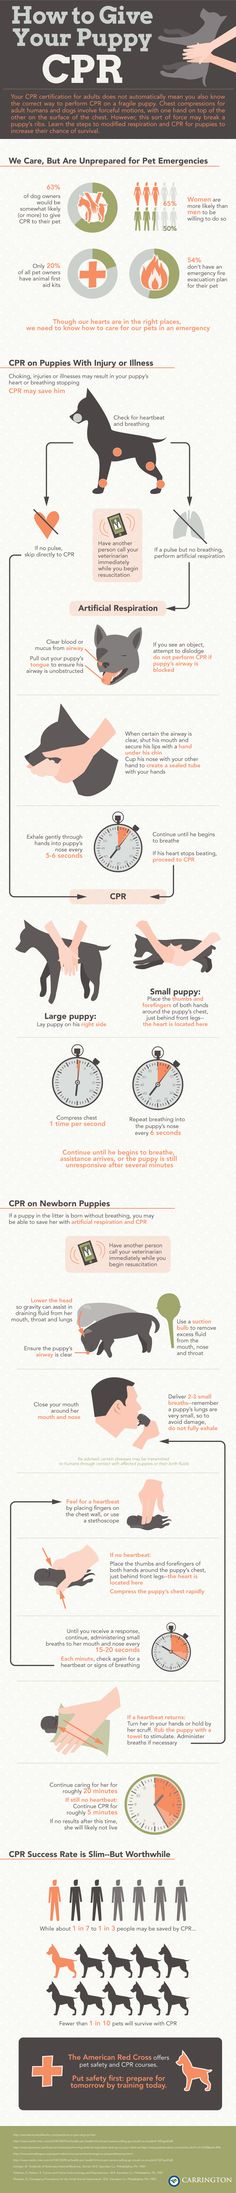 One of the most critical tools in the effort to protect your #pet is the knowledge of simple pet health issues and procedures. Knowing Cardiopulmonary Resuscitation (#CPR), for example, can mean the difference between a minor scare and the untimely demise of your pet. If you value your pet's life then it's absolutely imperative that you learn how to perform this procedure as soon as possible. #dog #infographic